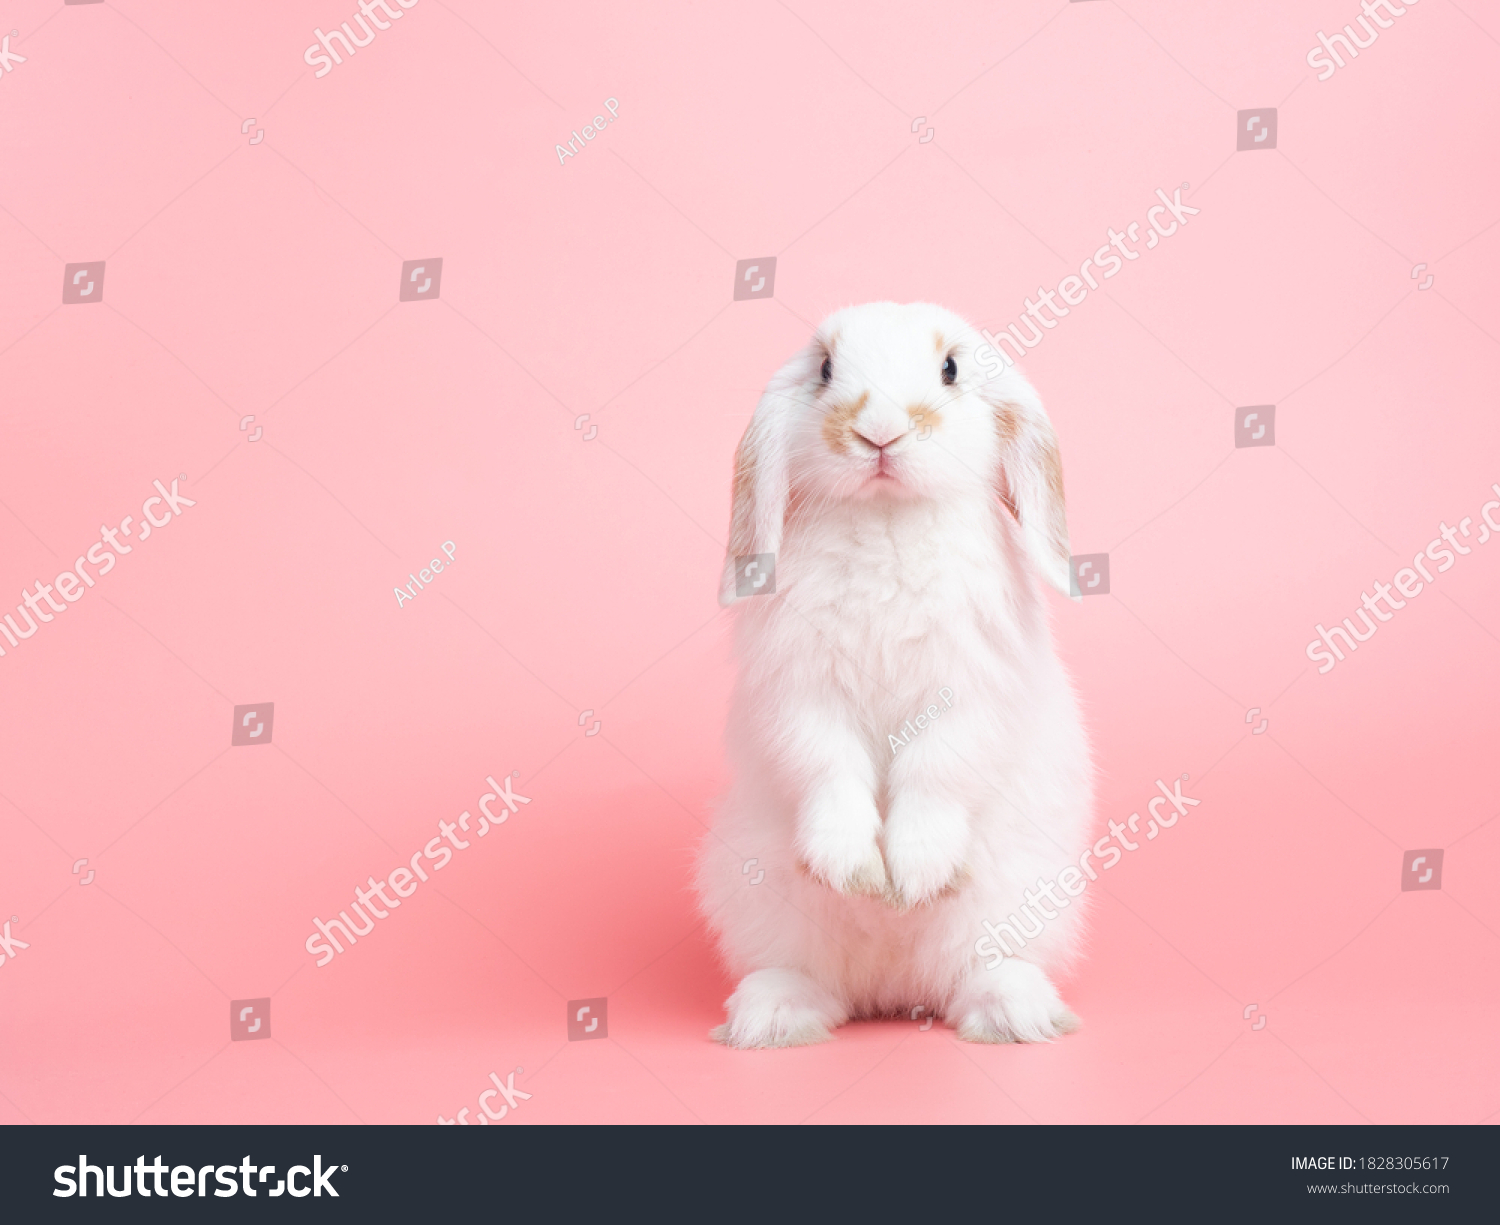 Front view of white cute baby holland lop rabbit standing on pink background. Lovely action of young rabbit. #1828305617